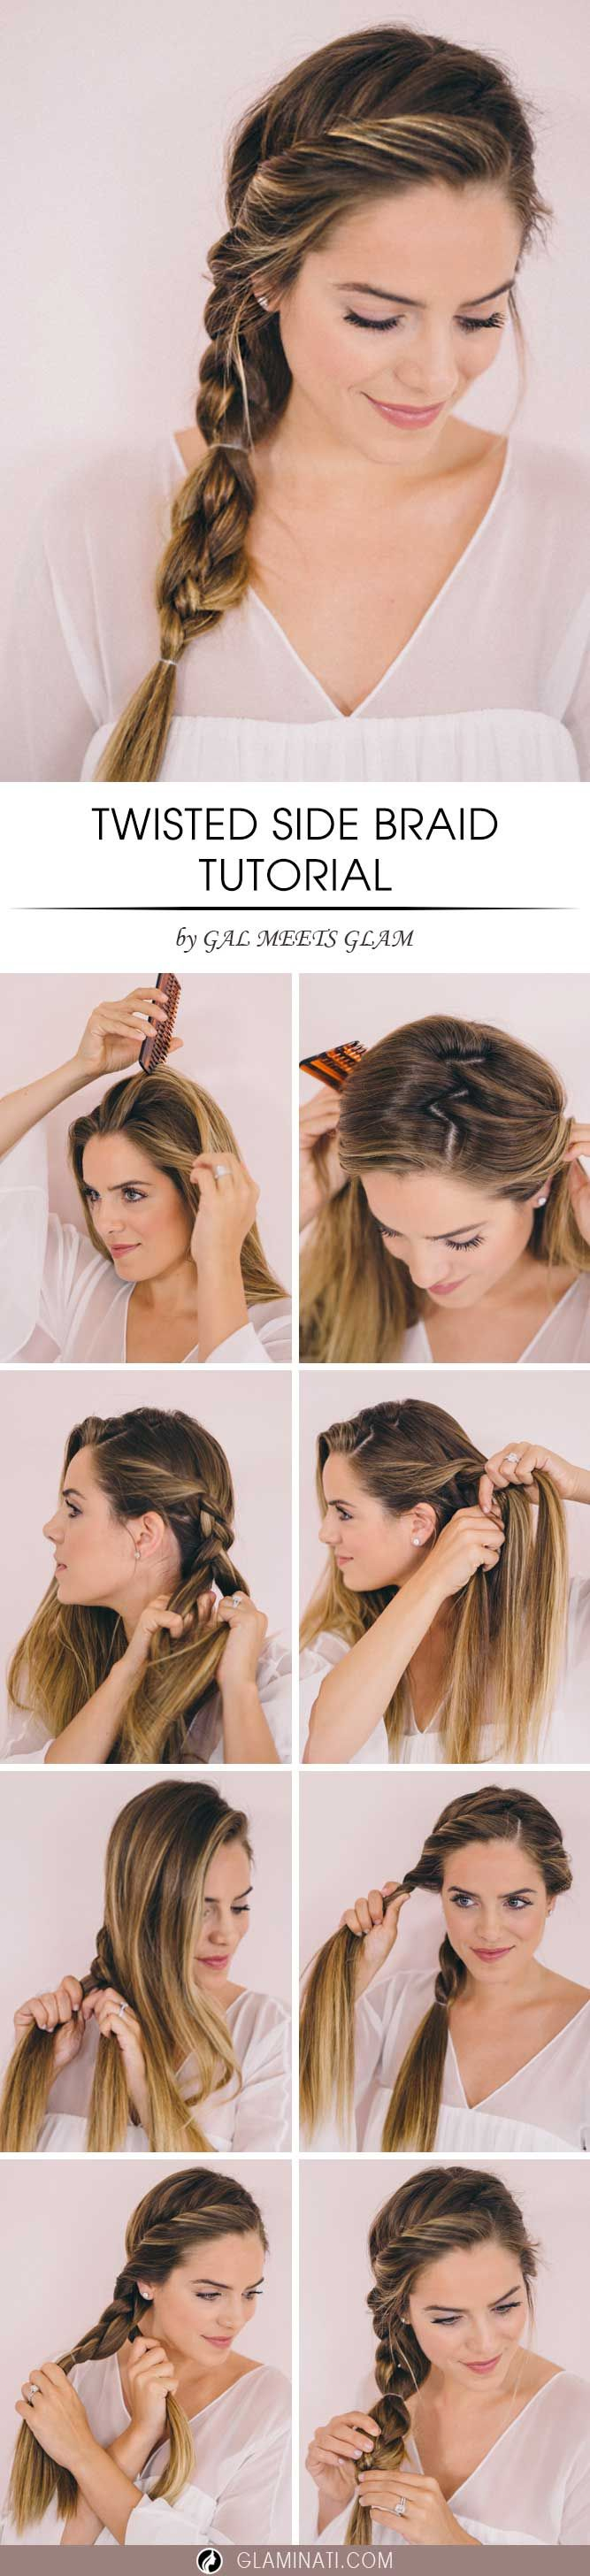 A side braid is trendy right now. It is perfect for everyday wear and some fancy parties. A twisted braid looks terrific with